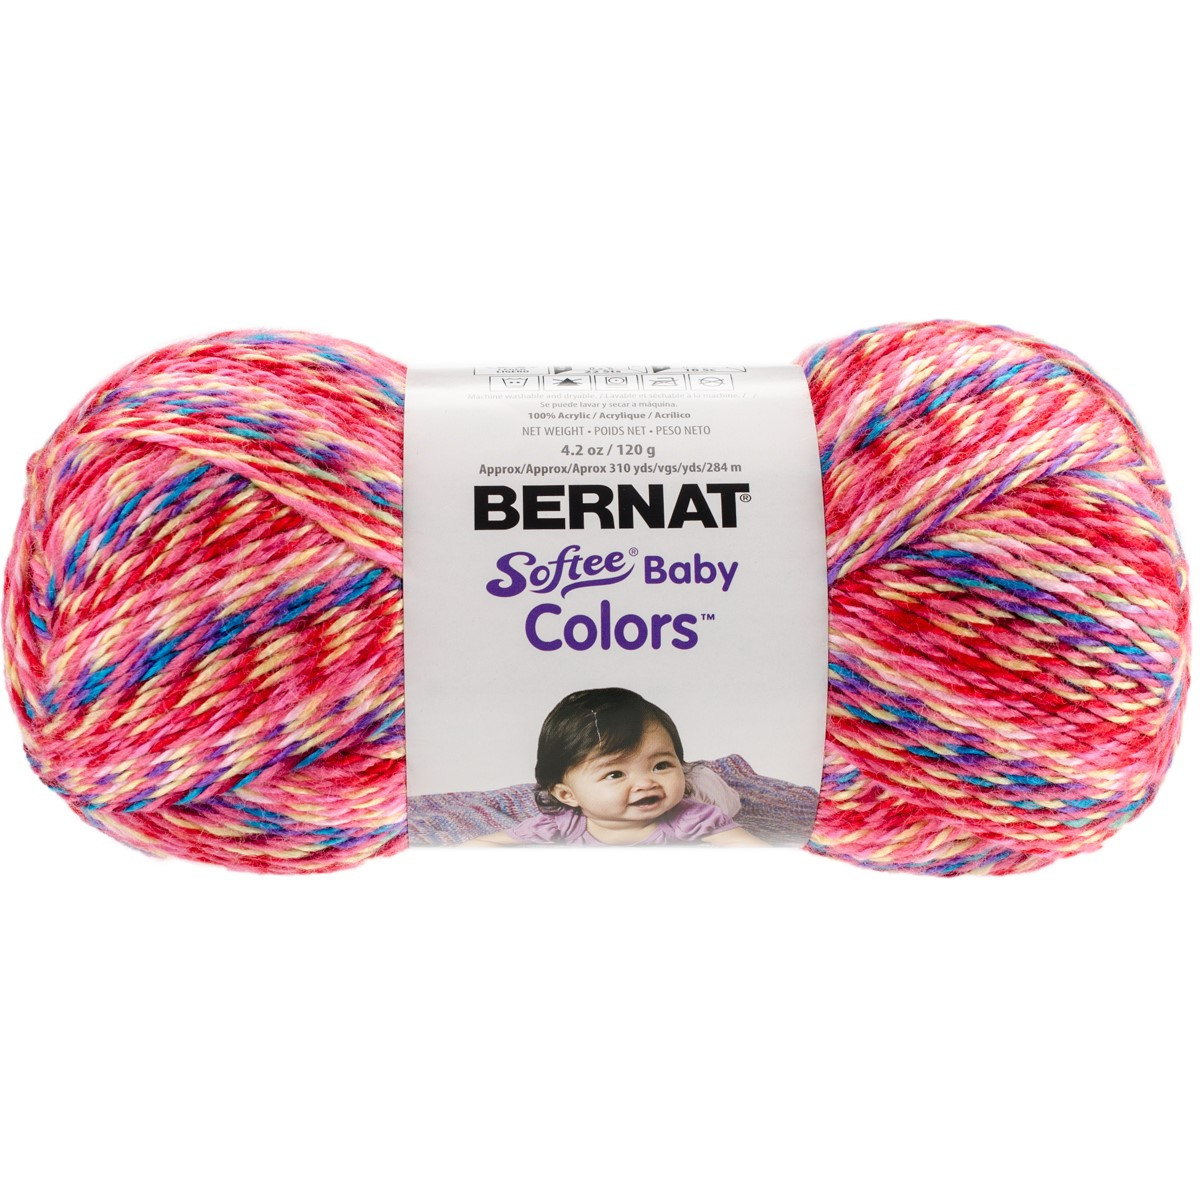 Lovely softee Baby Yarn Colors Pink Rainbow Baby Yarn Colors Of Wonderful 38 Images Baby Yarn Colors